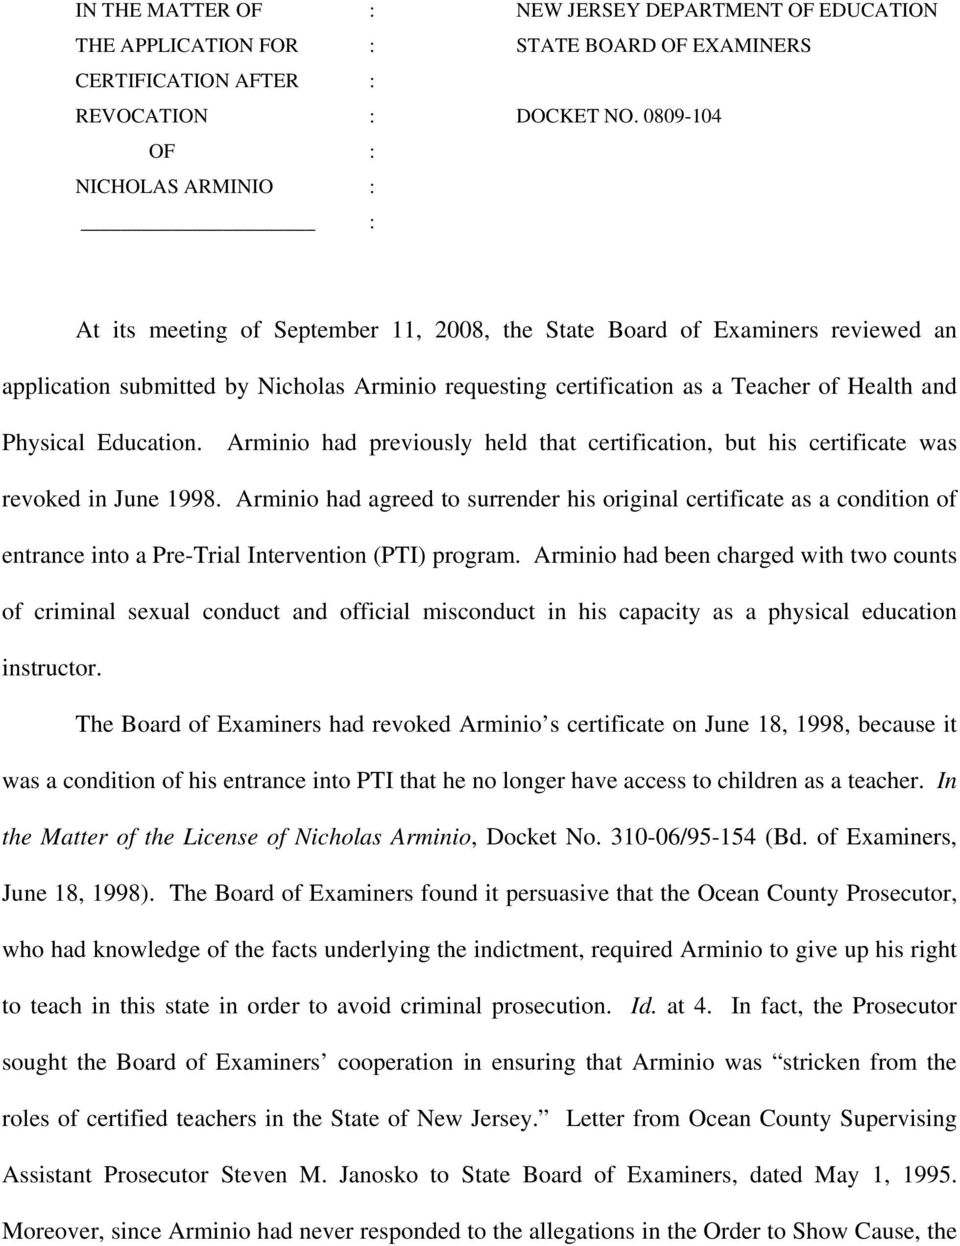 Health and Physical Education. Arminio had previously held that certification, but his certificate was revoked in June 1998.